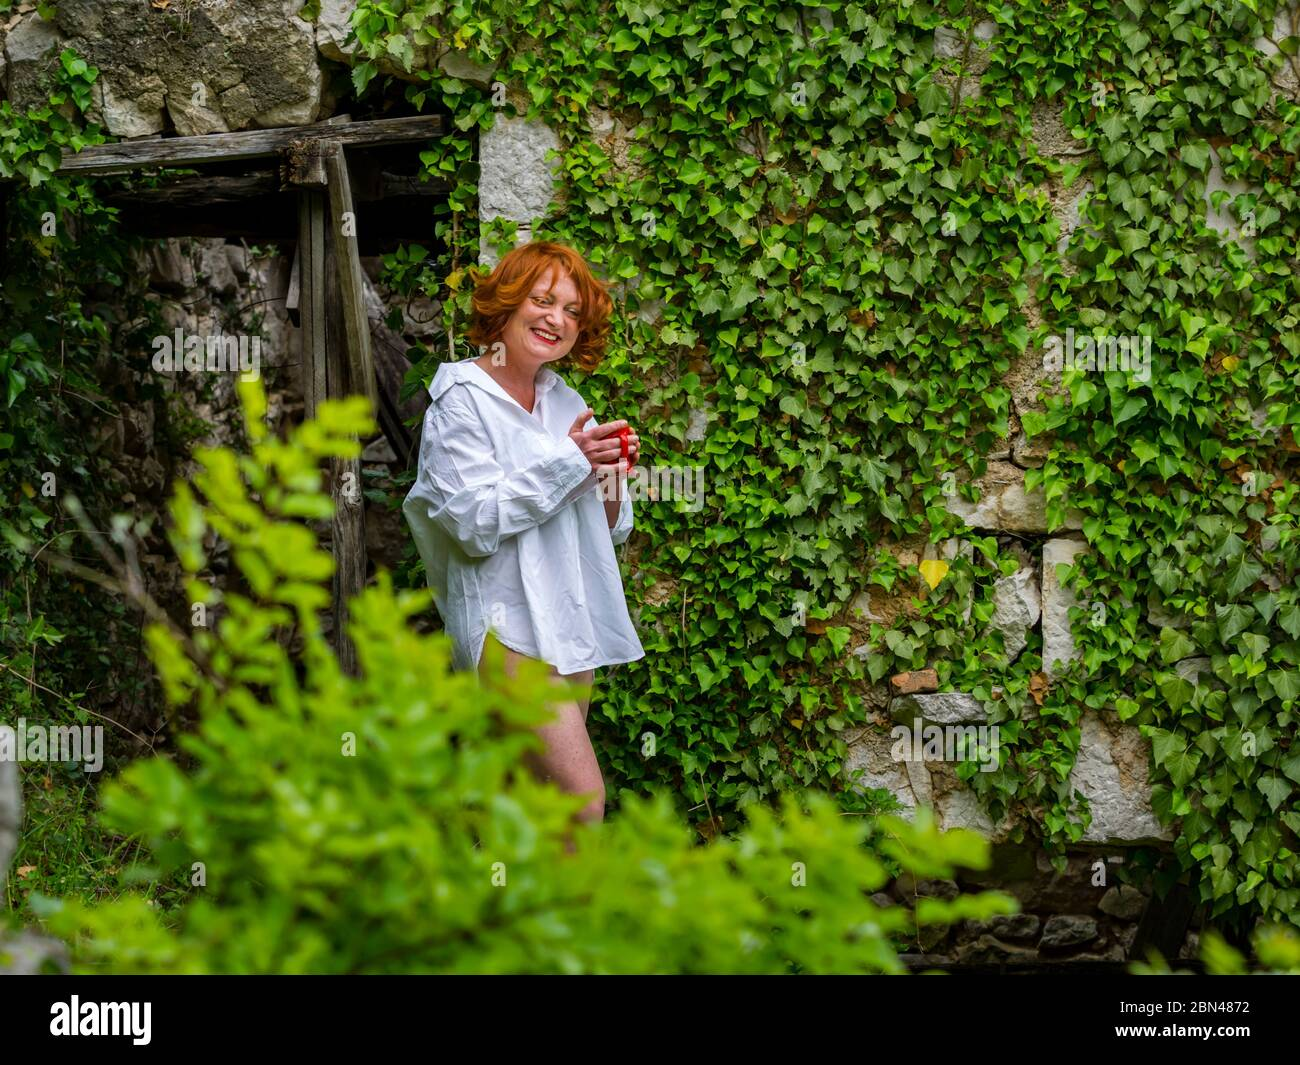 Good-looking ginger hair curly curls redhaired redhair midadult woman outdoors in remote abandoned place house hand hands hold holding Red coffee cup Stock Photo